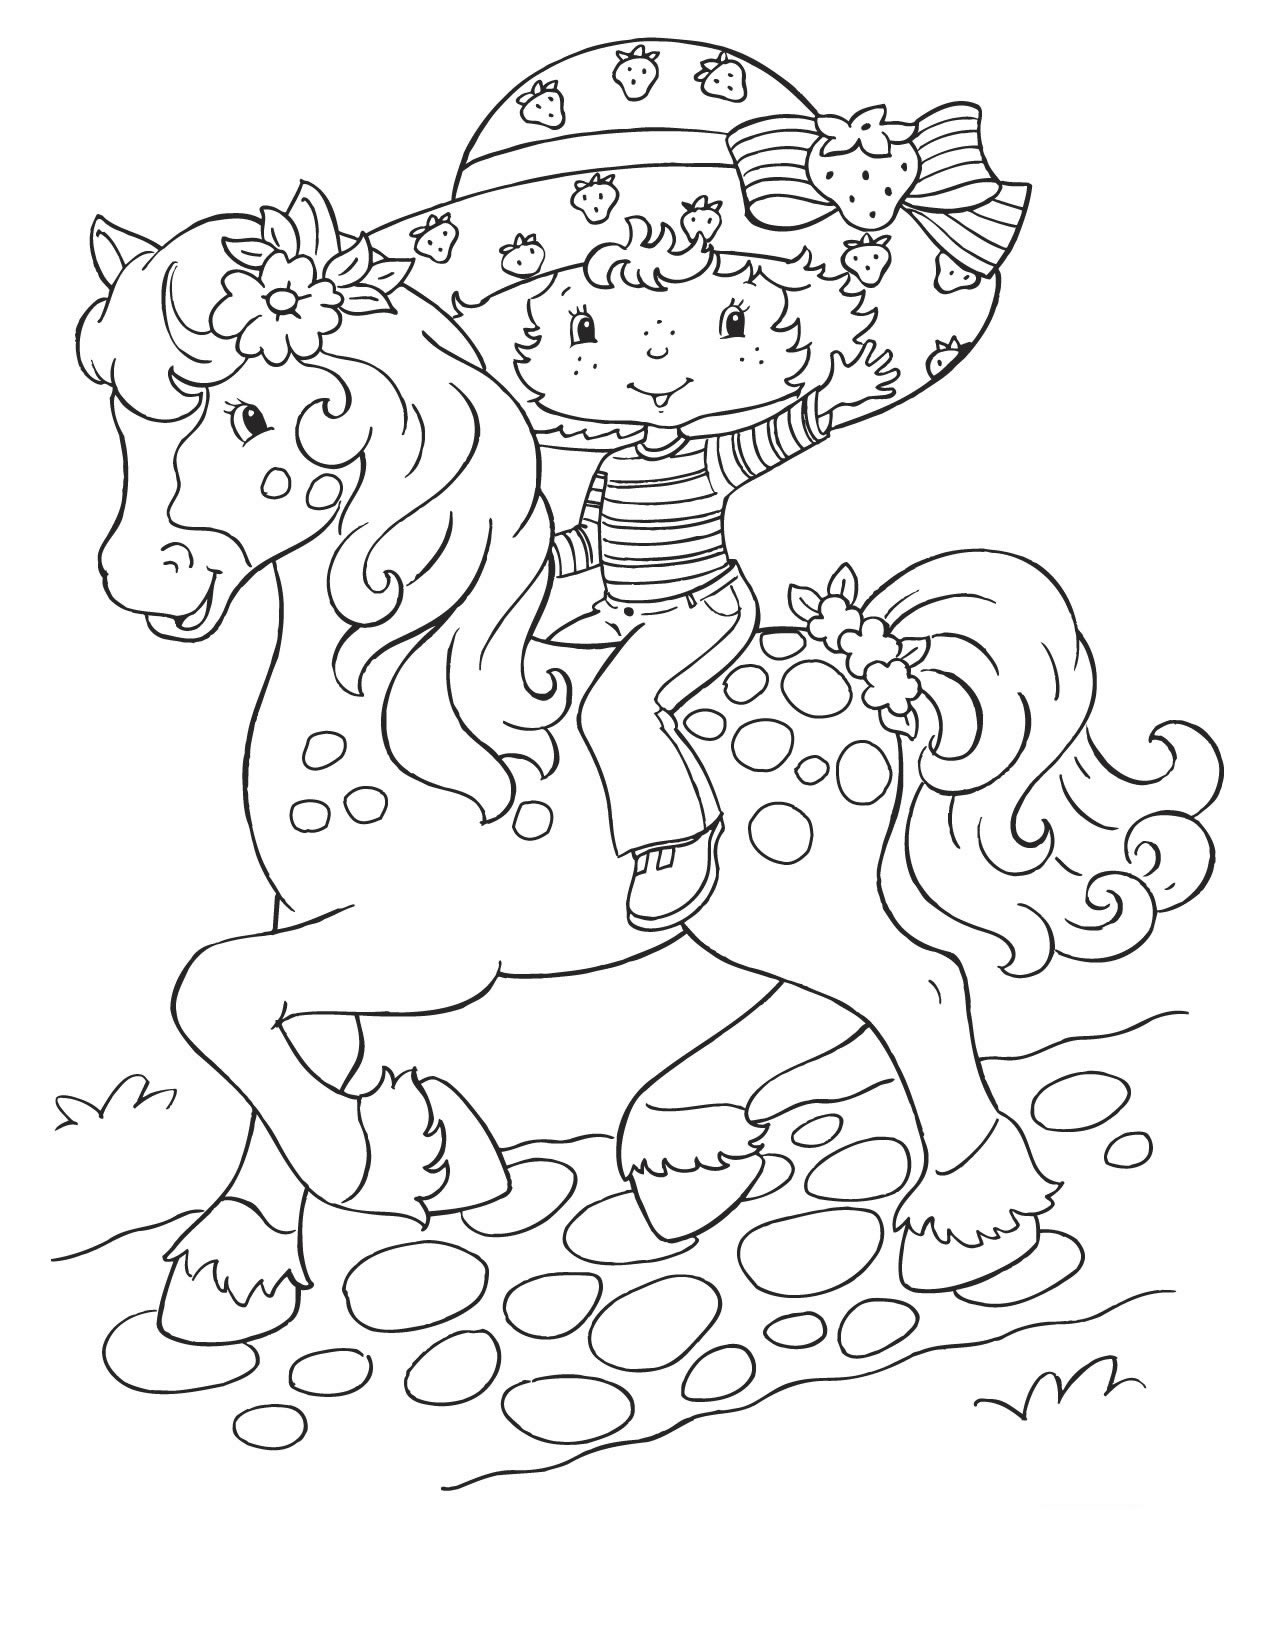 strawberry shortcake coloring pages for kids strawberry shortcake backgrounds wallpapertag kids coloring strawberry shortcake pages for